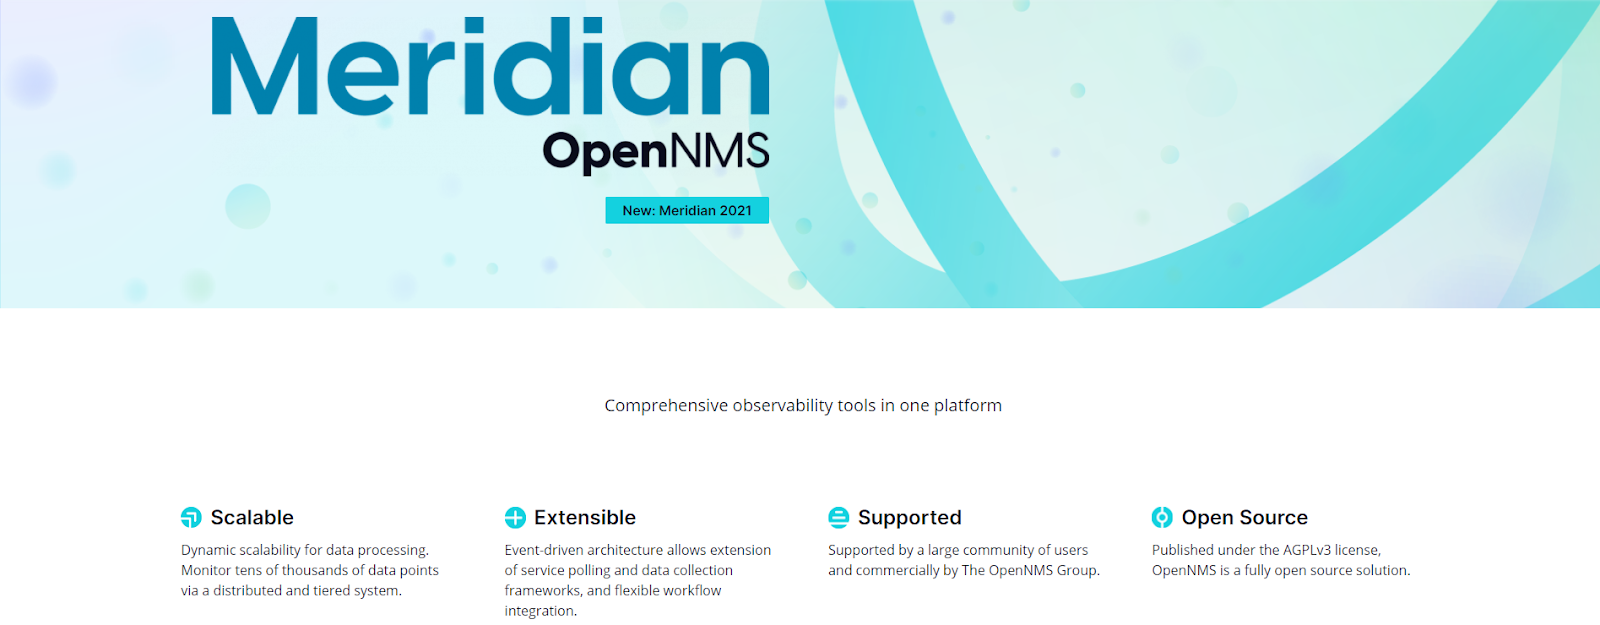 OpenNMS Network Monitoring Tool